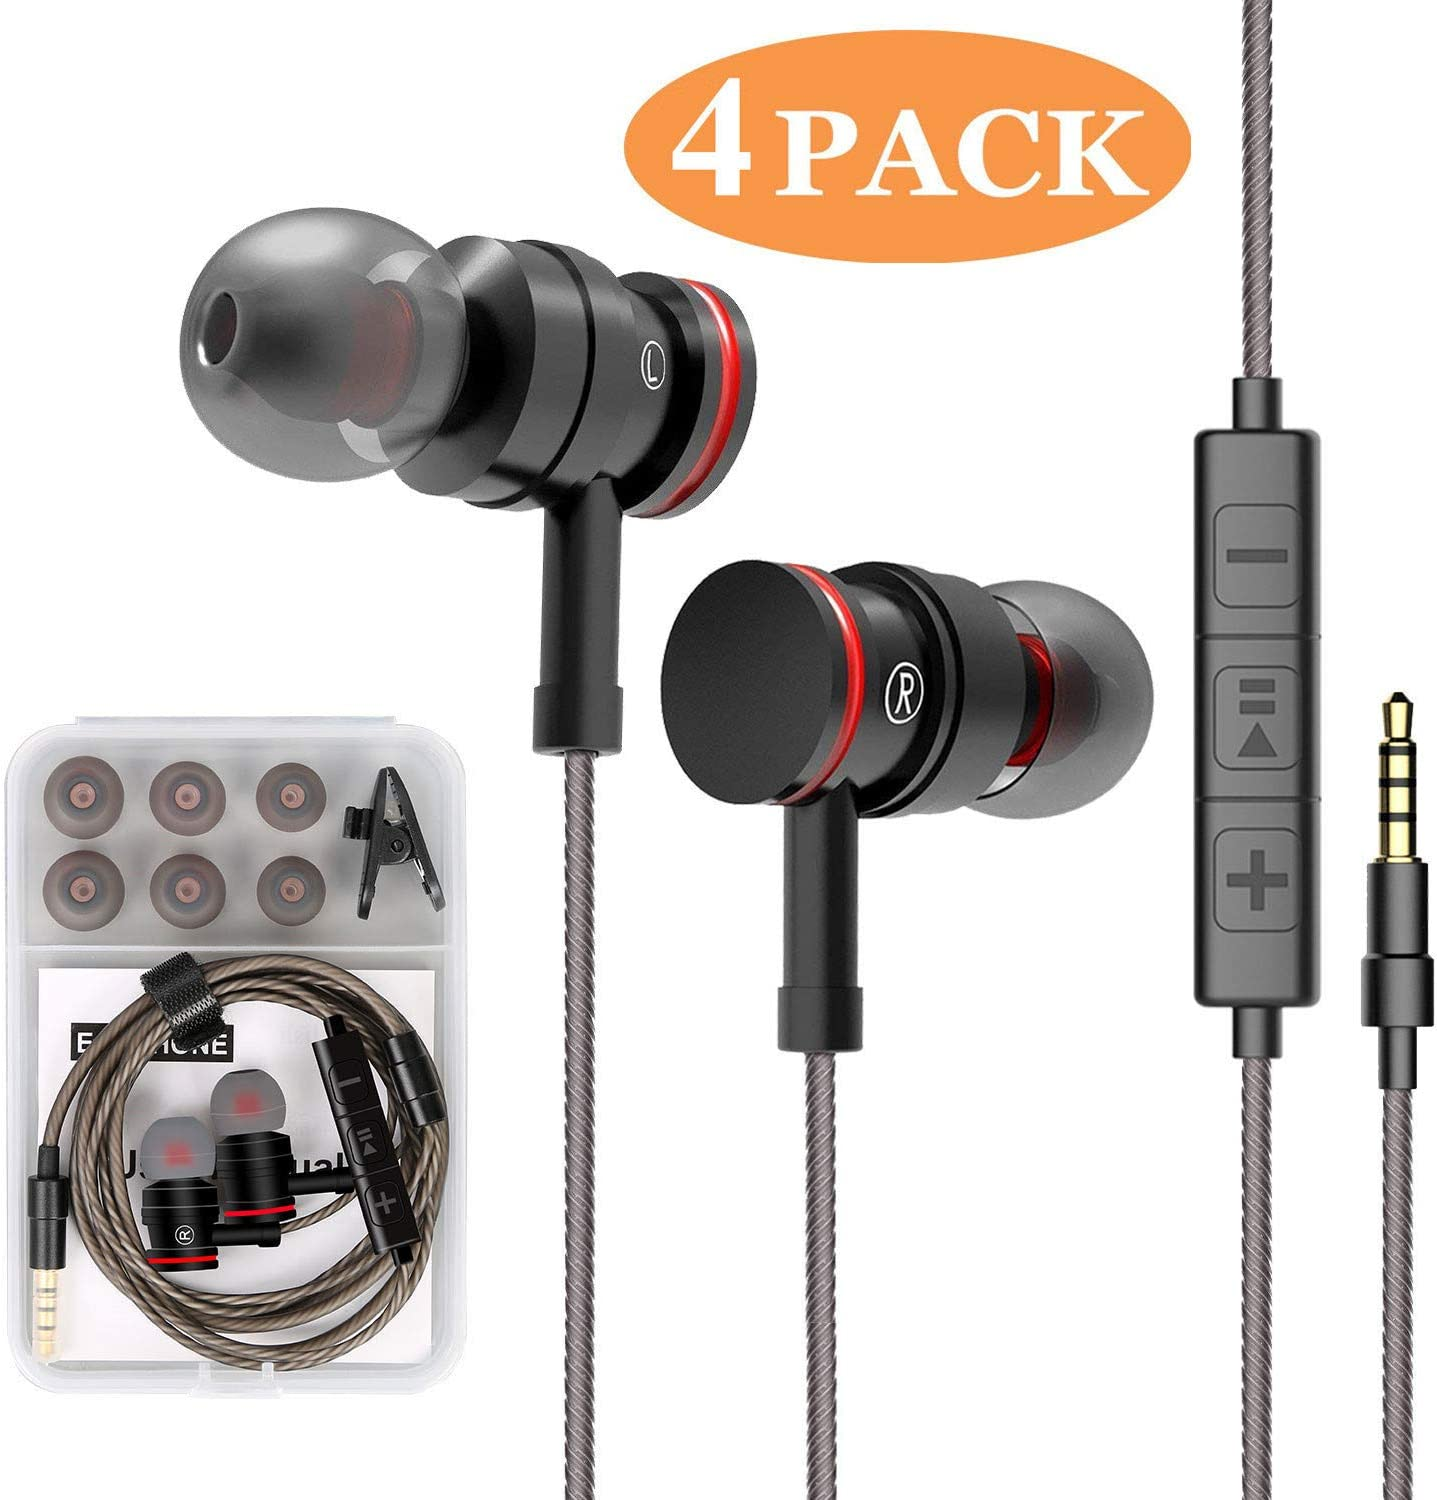 Earphones 4 Pack Bass Earbuds with Microphone Stereo in Ear Headphones with Mic and Volume Control 3.5mm Plug Compatible Multiple Audio Devices 3.9 Ft Black